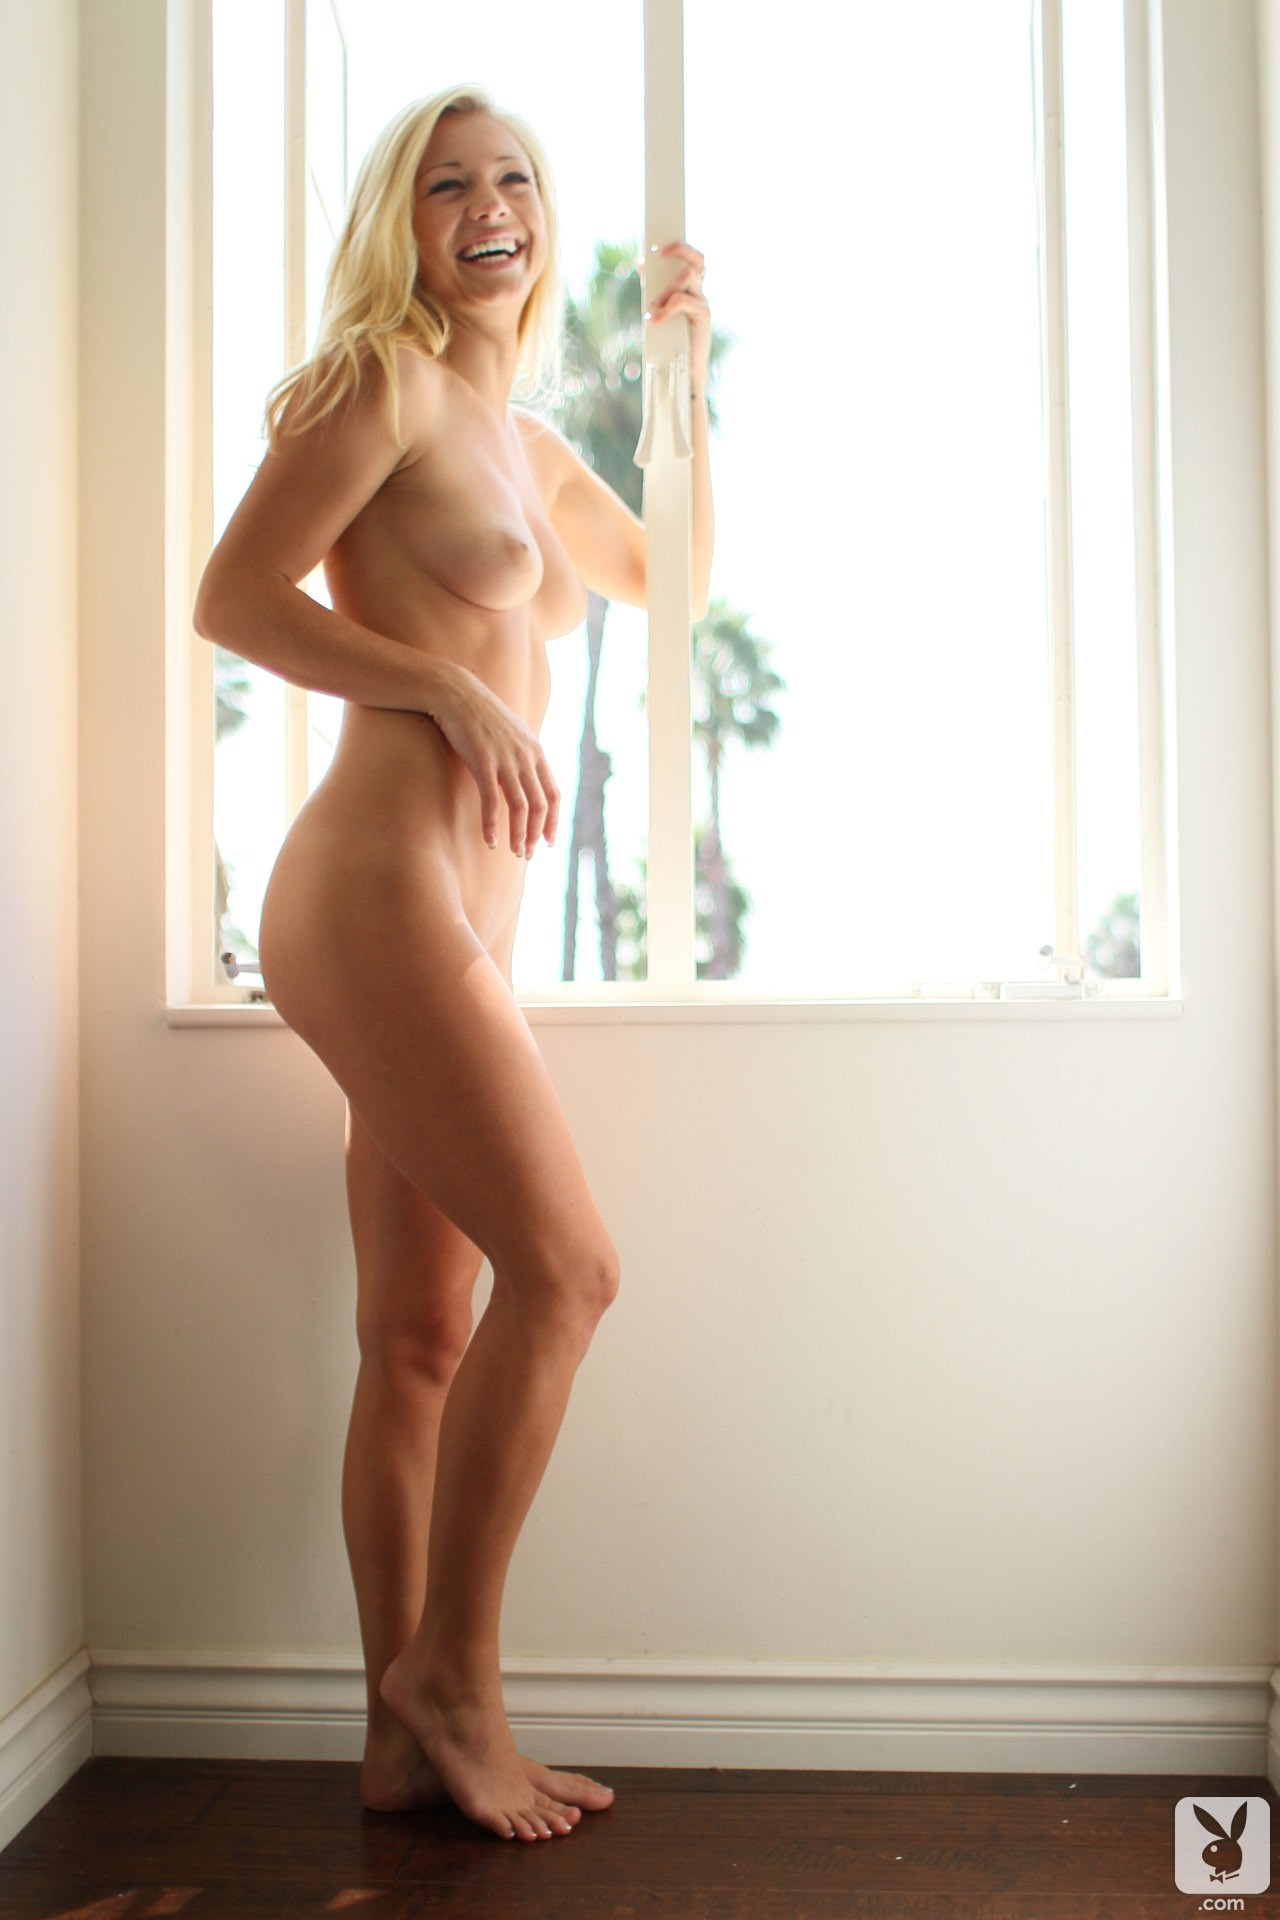 Unclad nikki leigh, the other bolyn girl sex scene